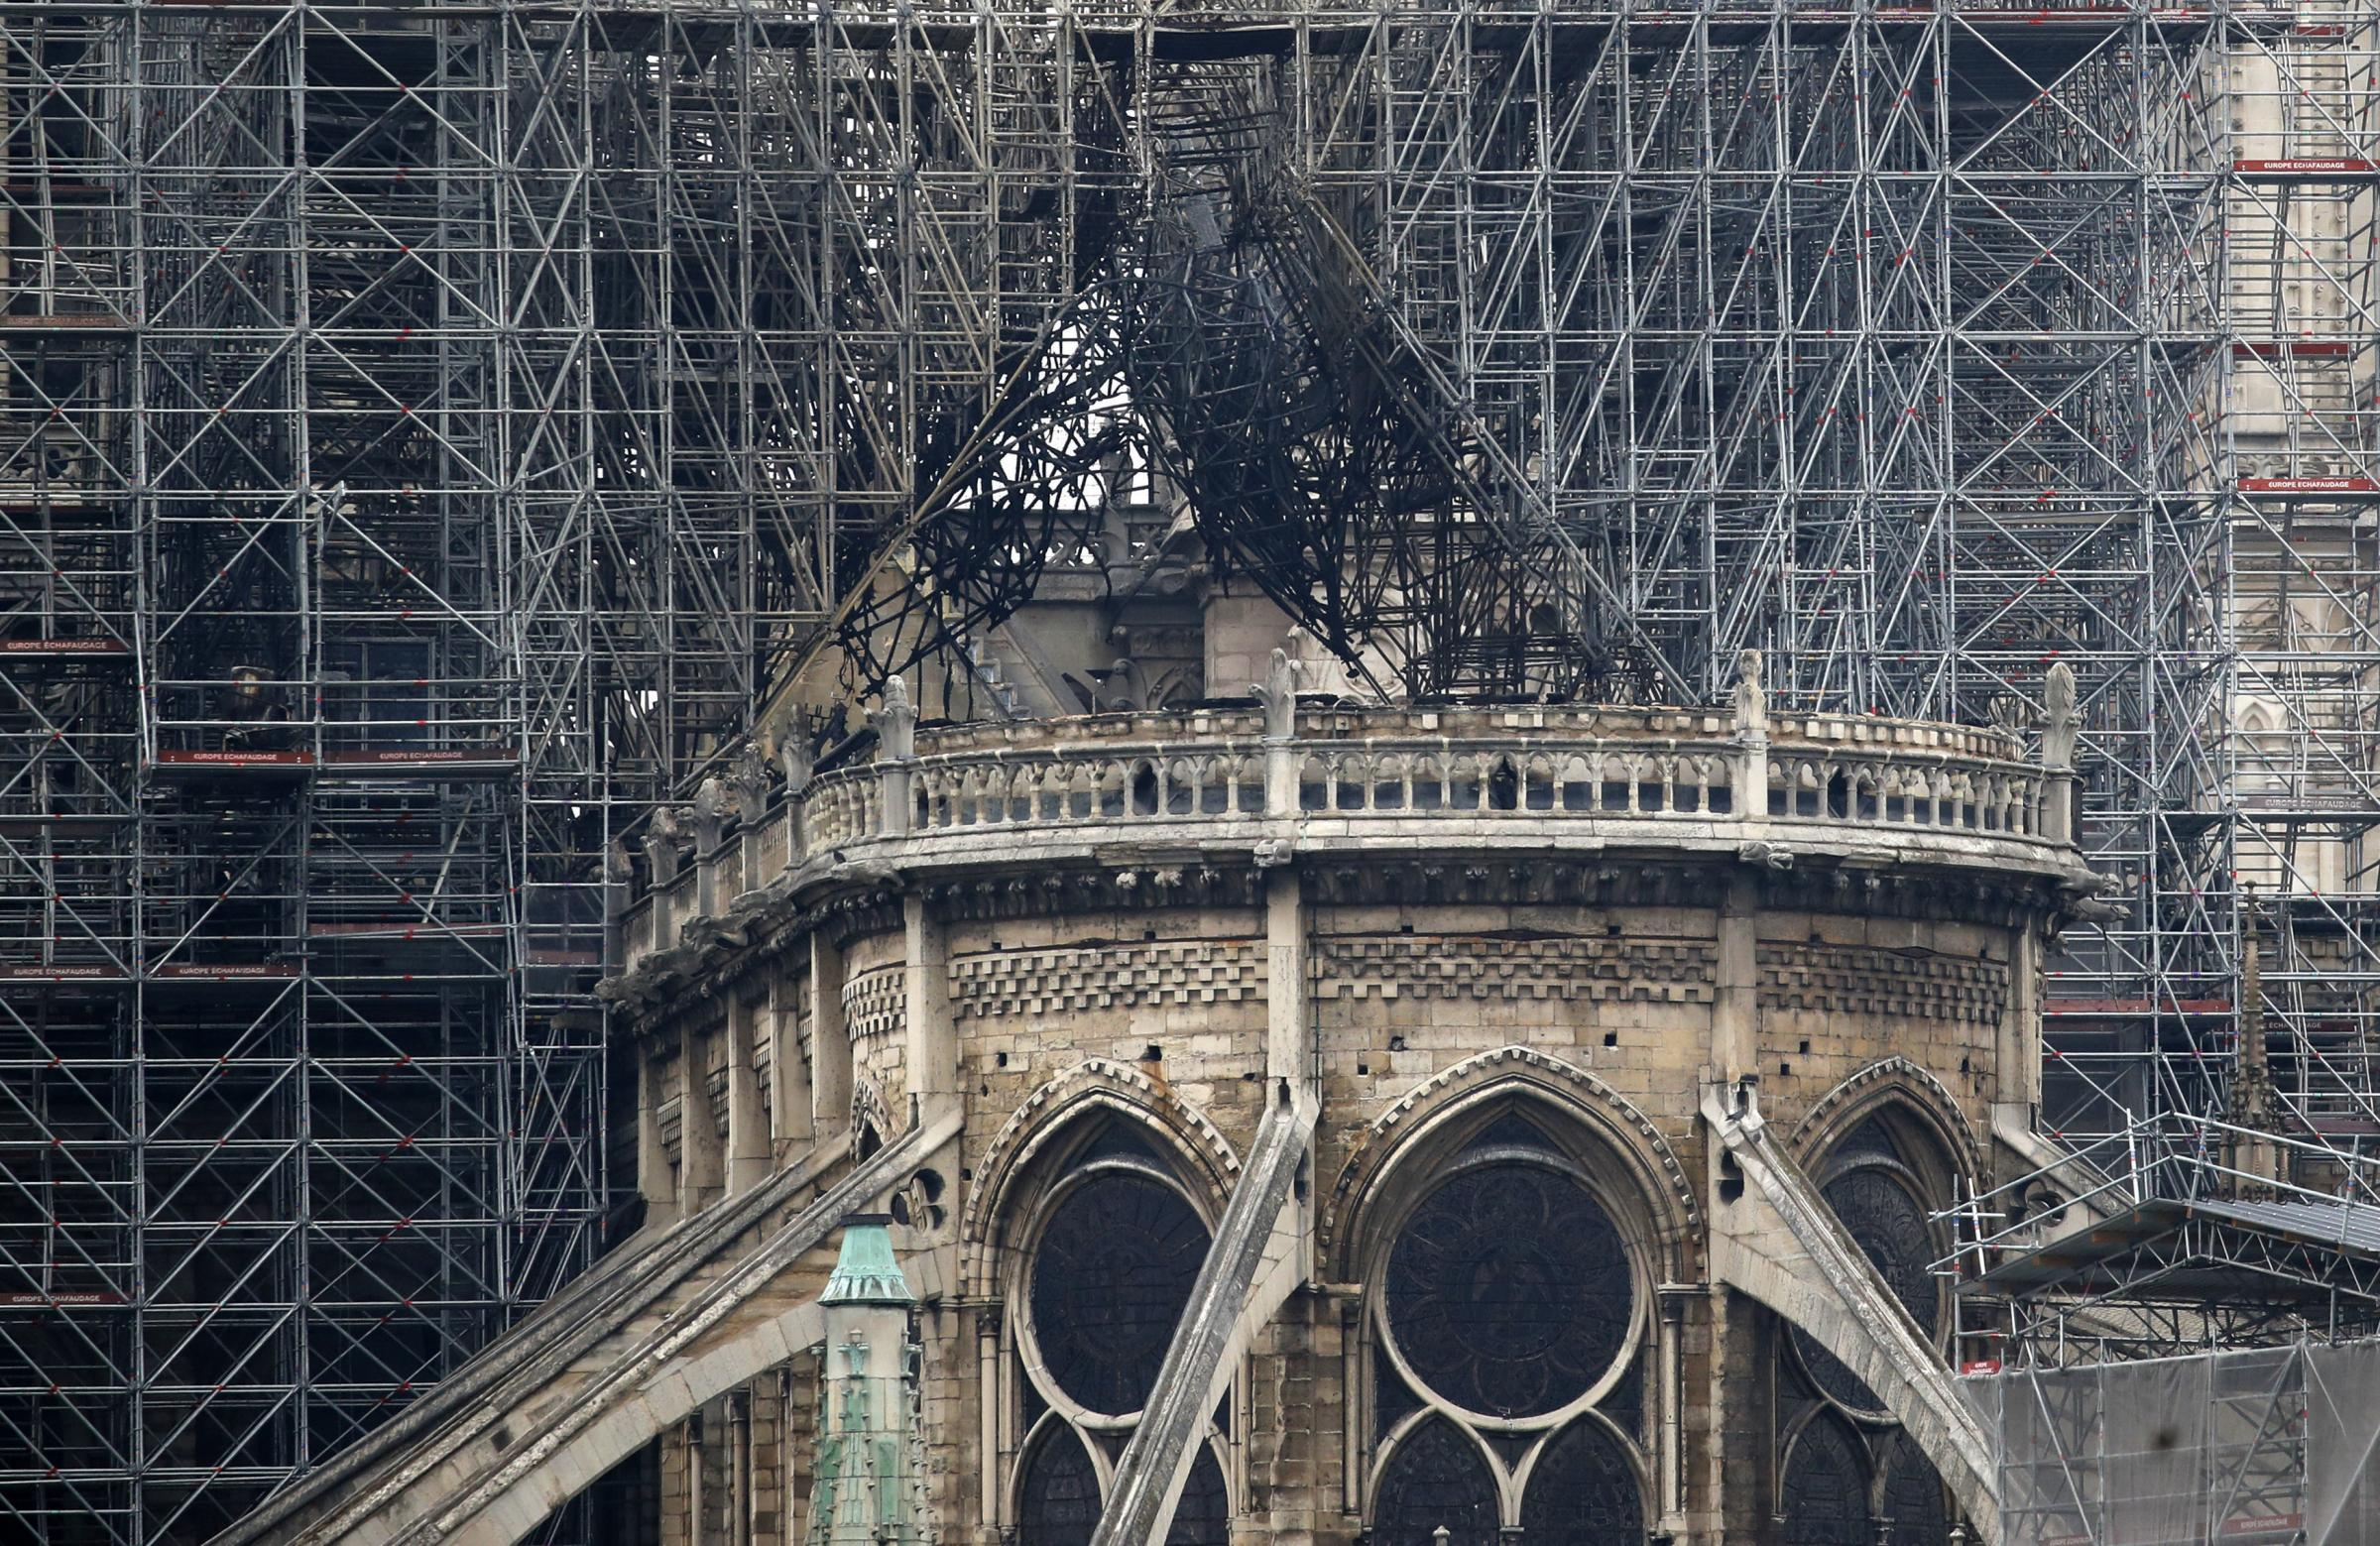 The Notre Dame was struck by a fire yesterday